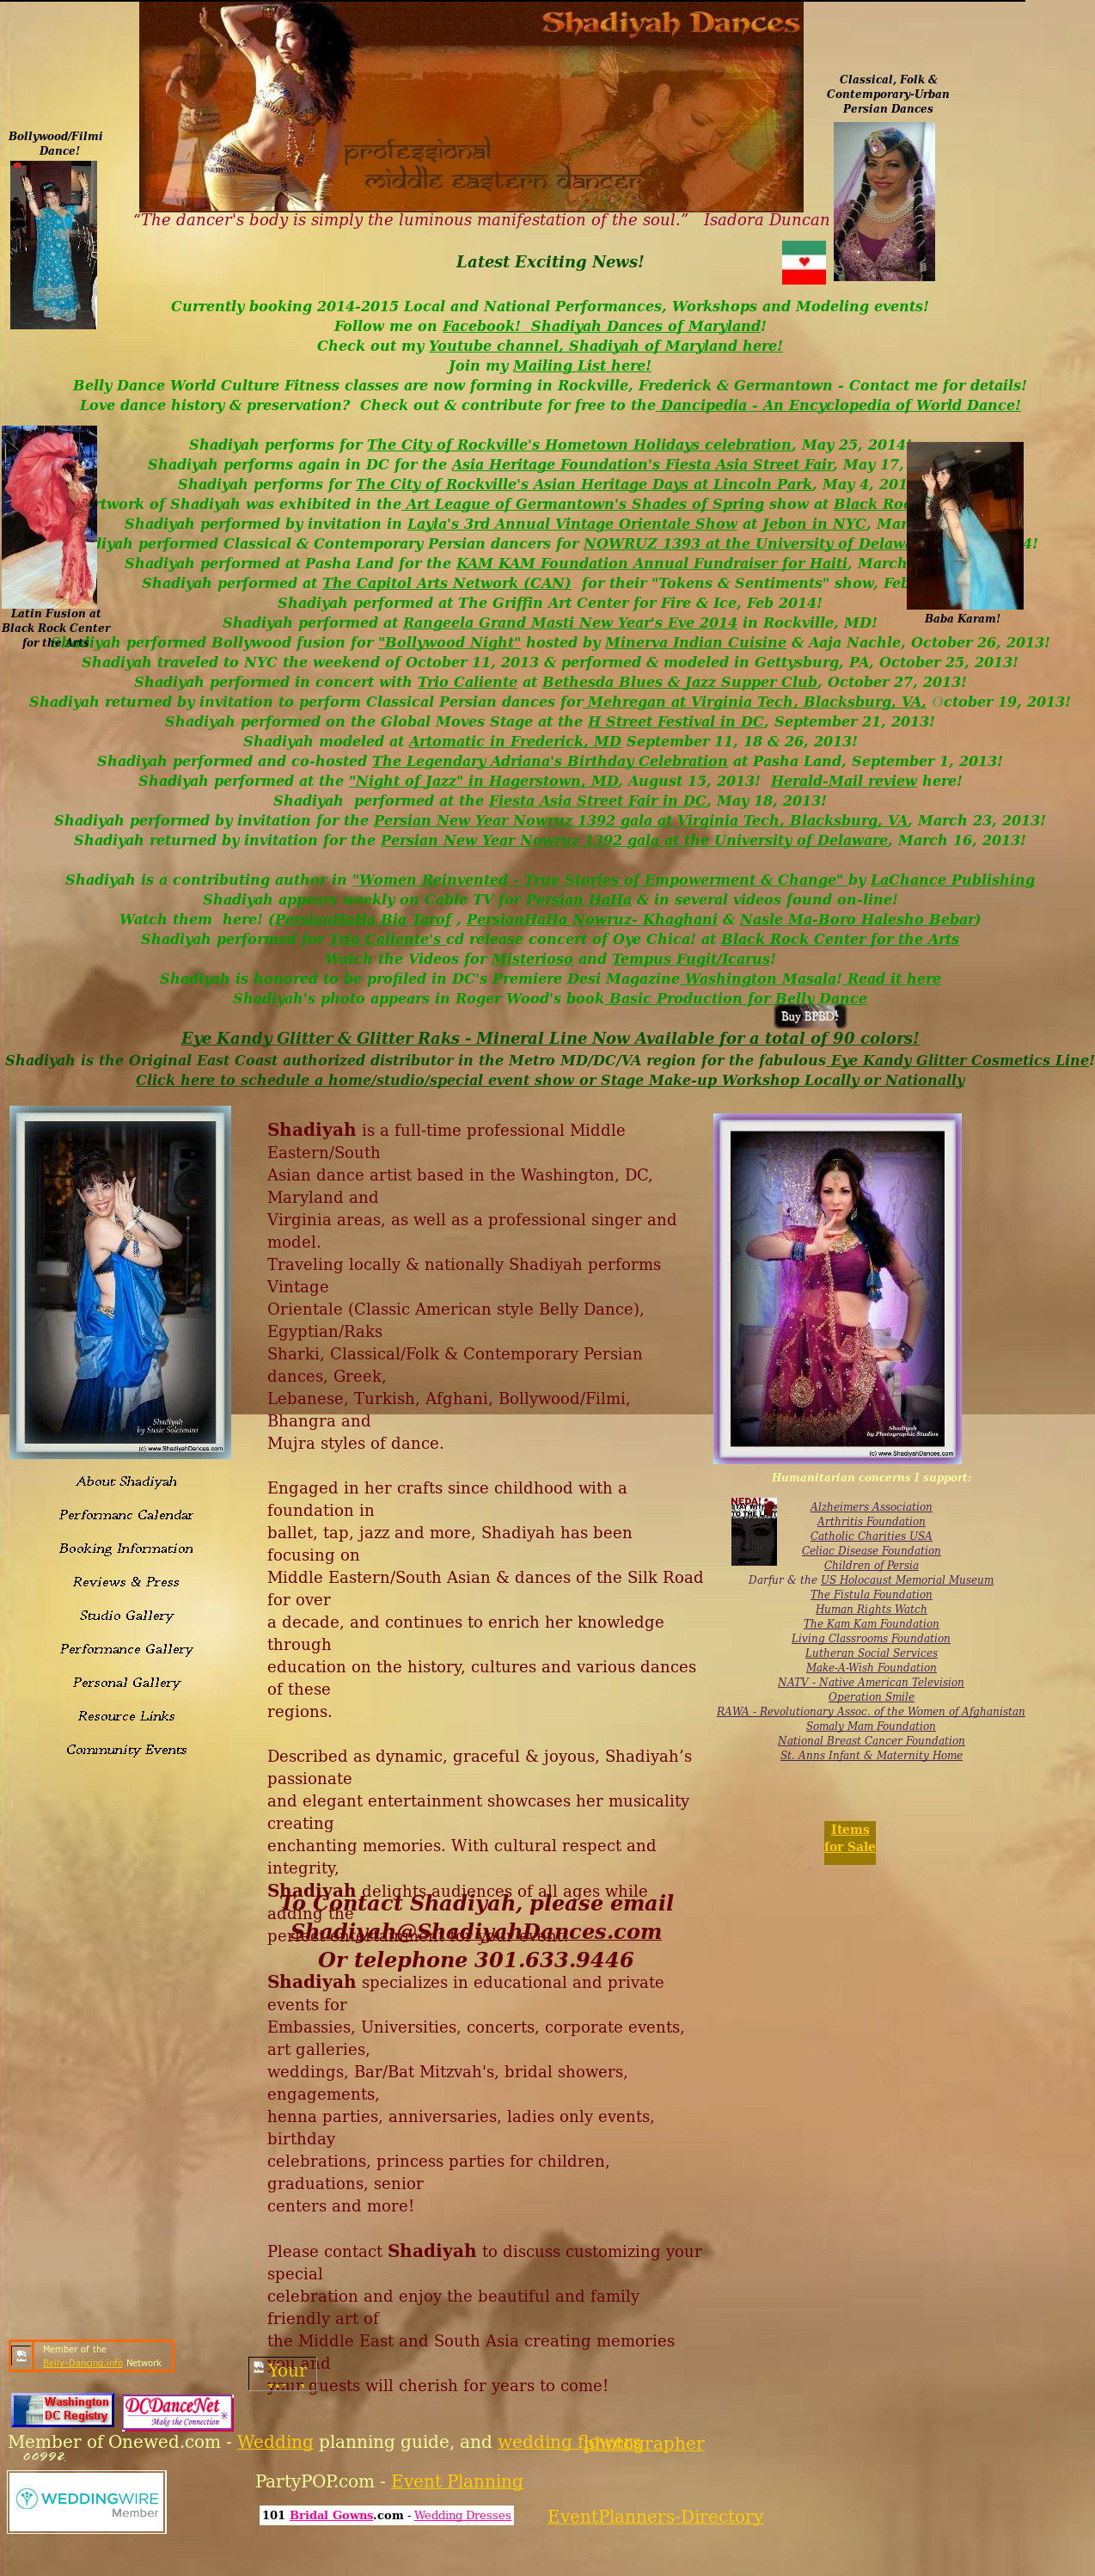 Shadiyah Dances Of Maryland Competitors, Revenue and